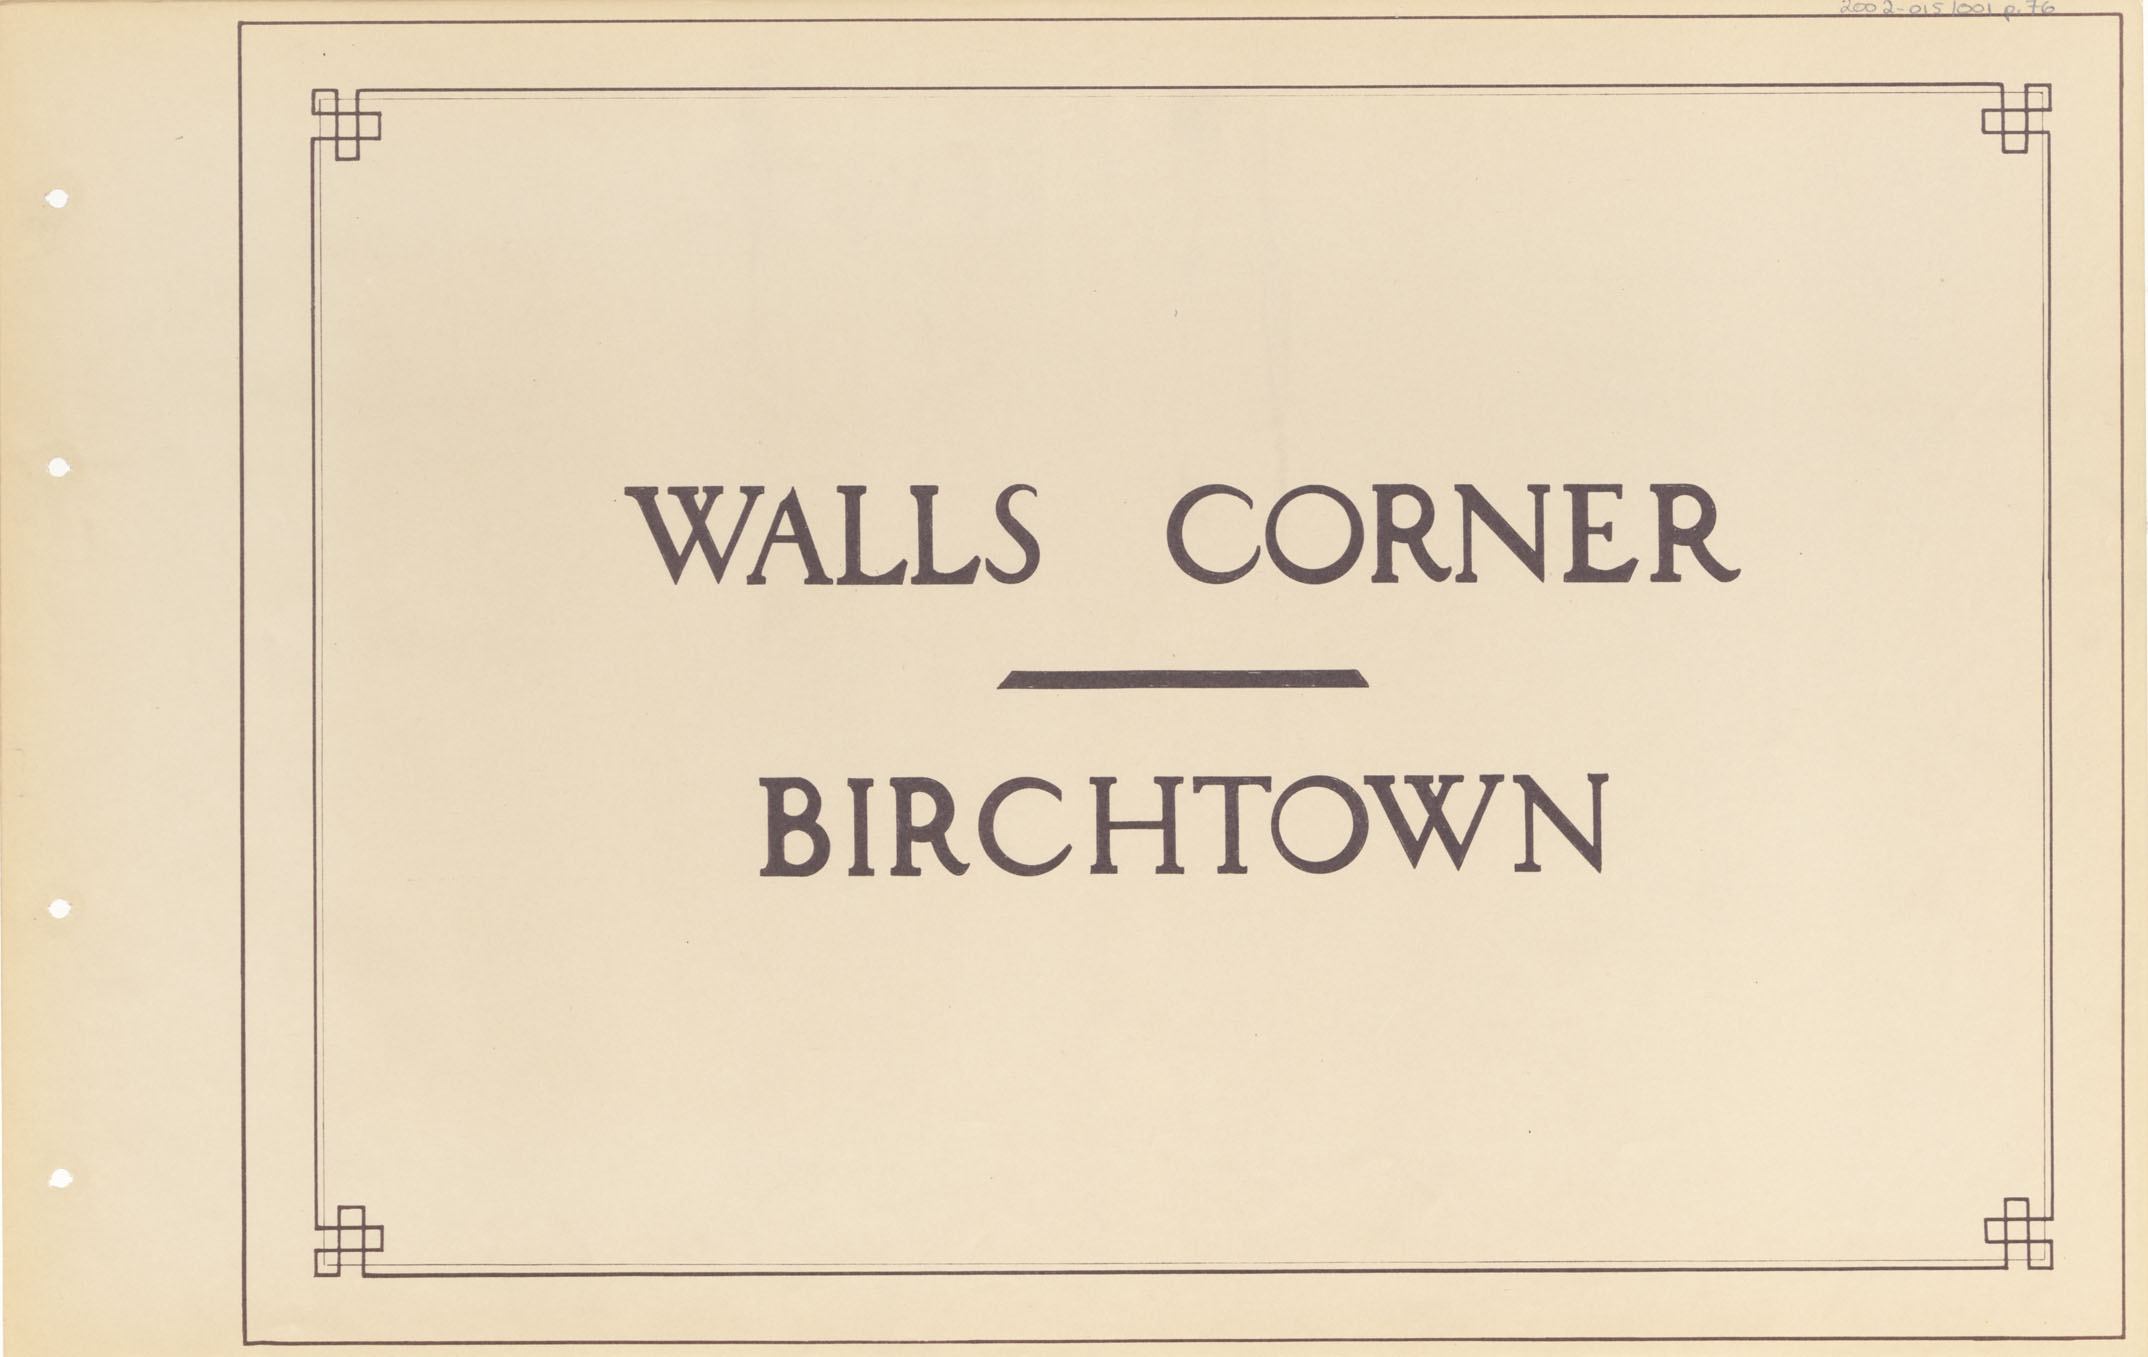 Highways : Walls Corner - Birchtown